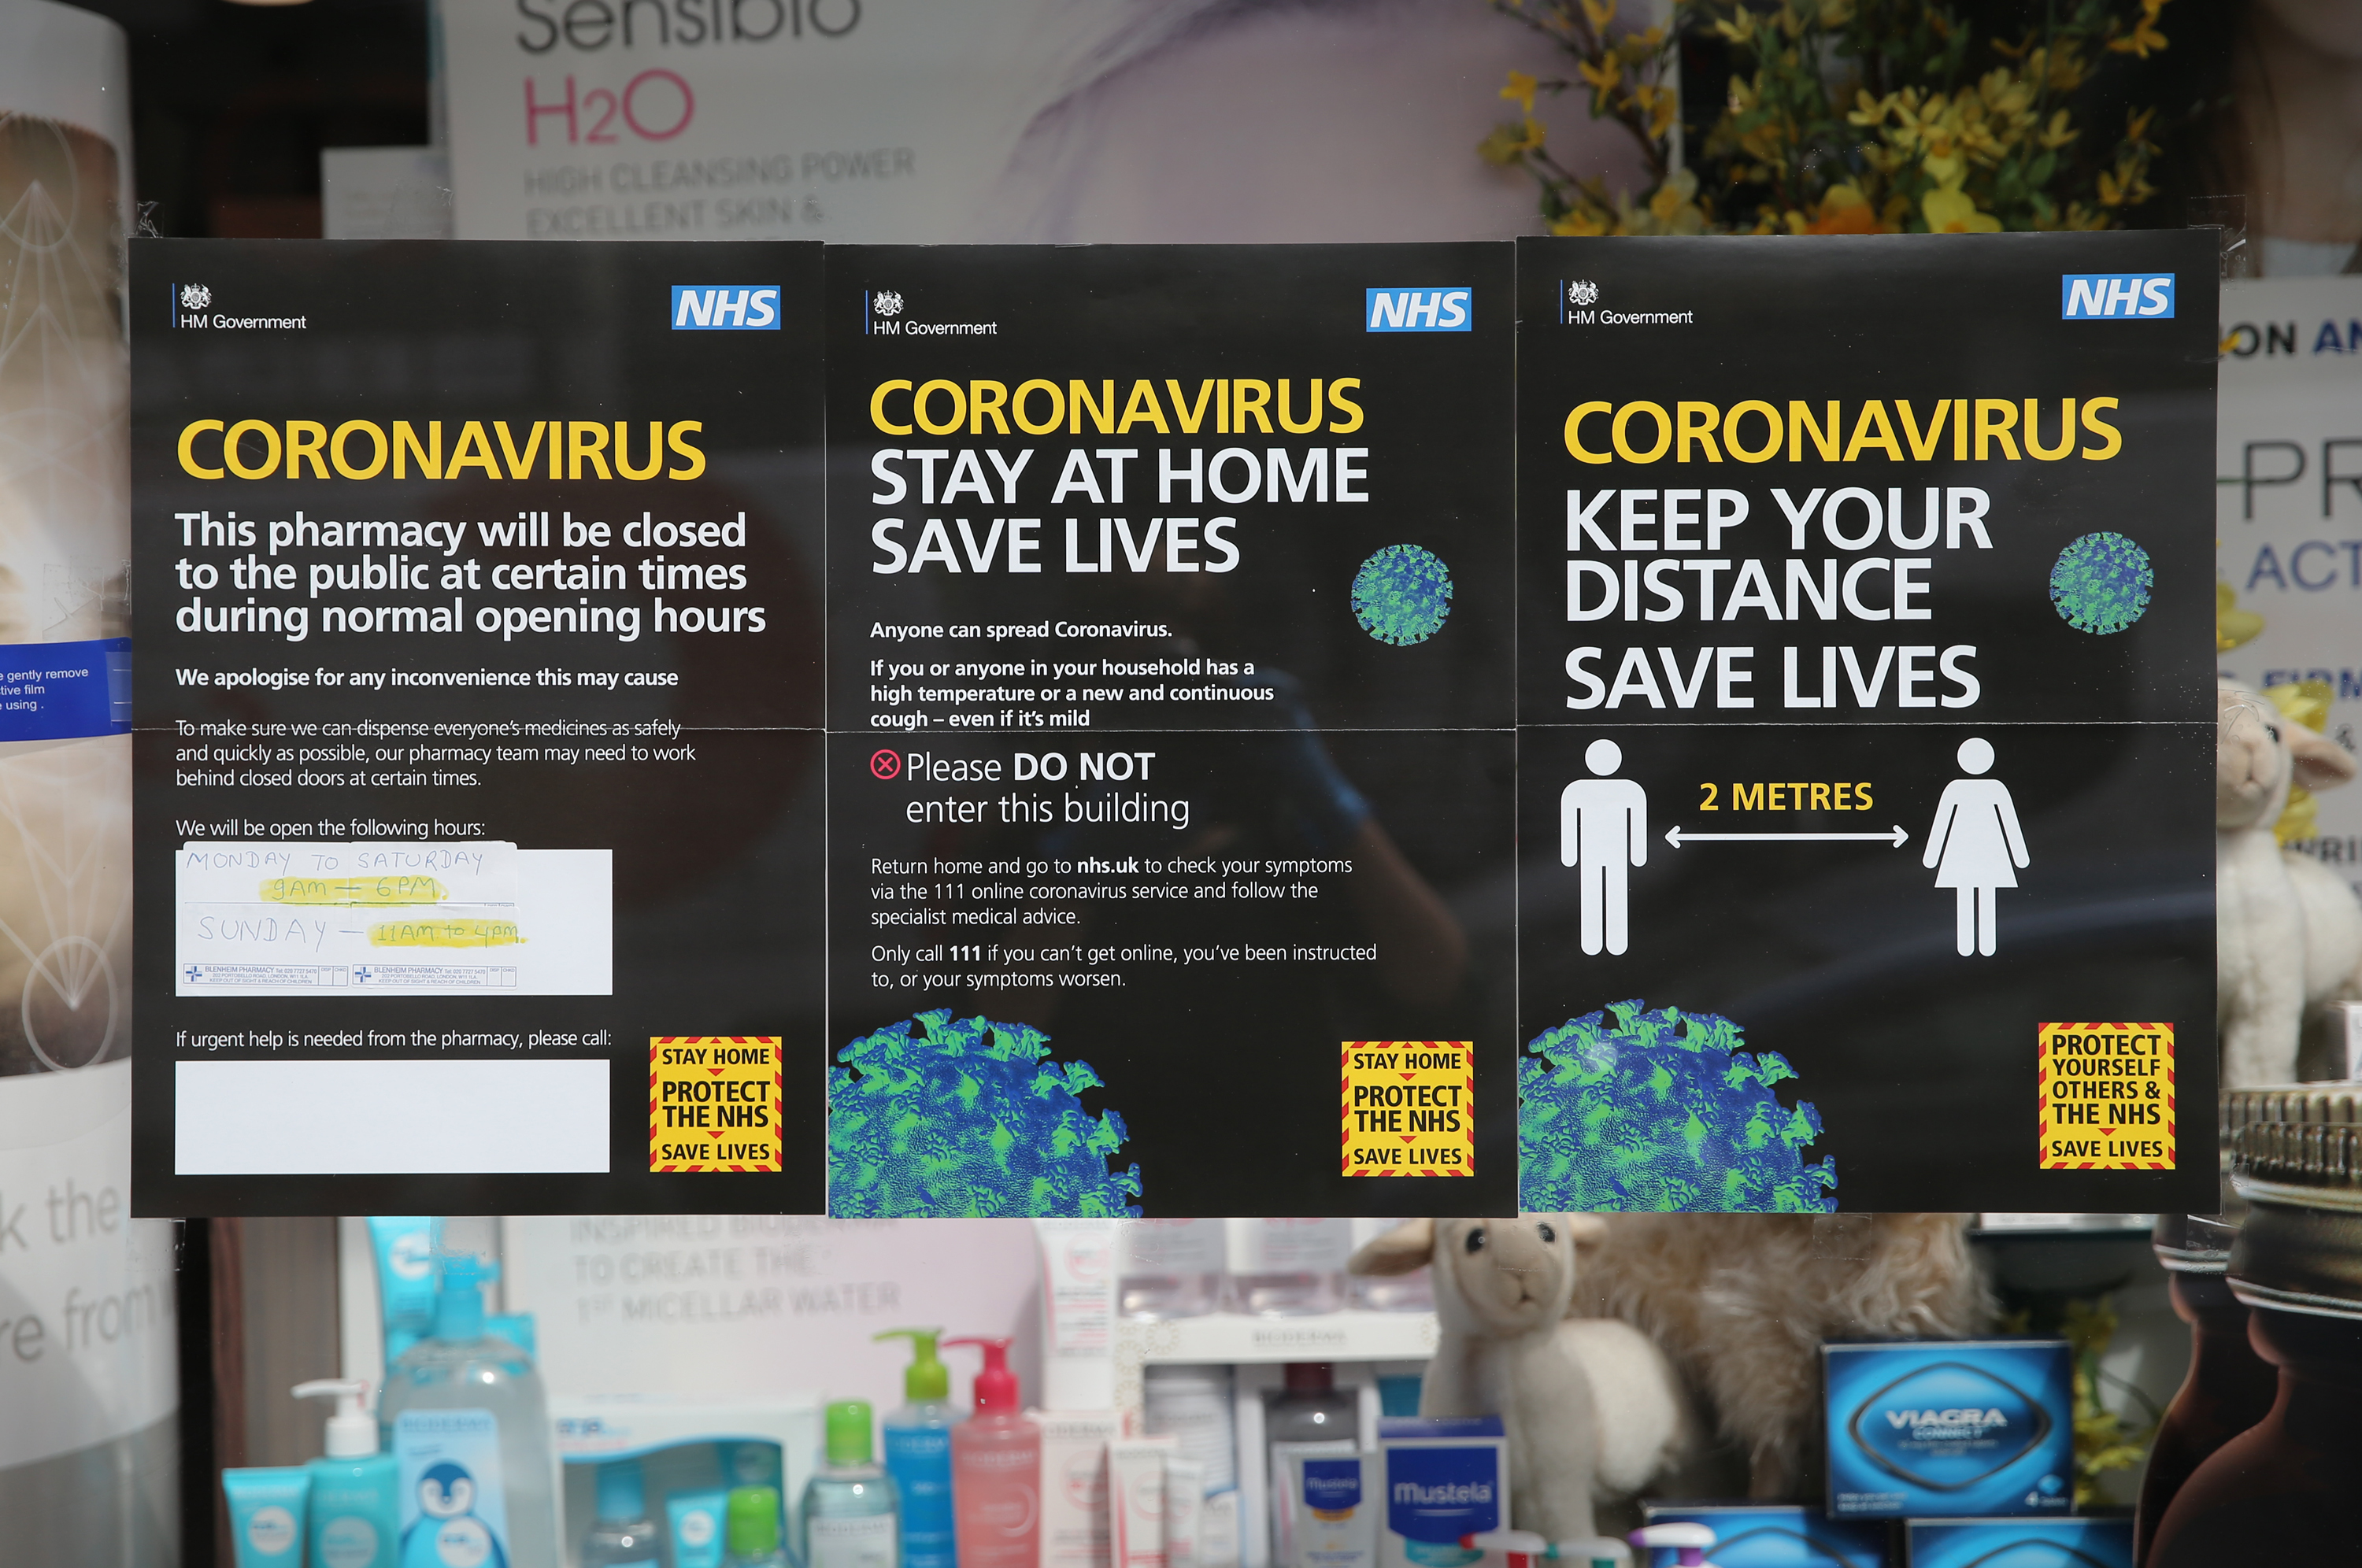 NHS information signs on covid-19 are displayed outside a pharmacy in Portobello Road, west London, as the UK continues in lockdown to help curb the spread of the coronavirus. Picture date: Sunday April 26, 2020.